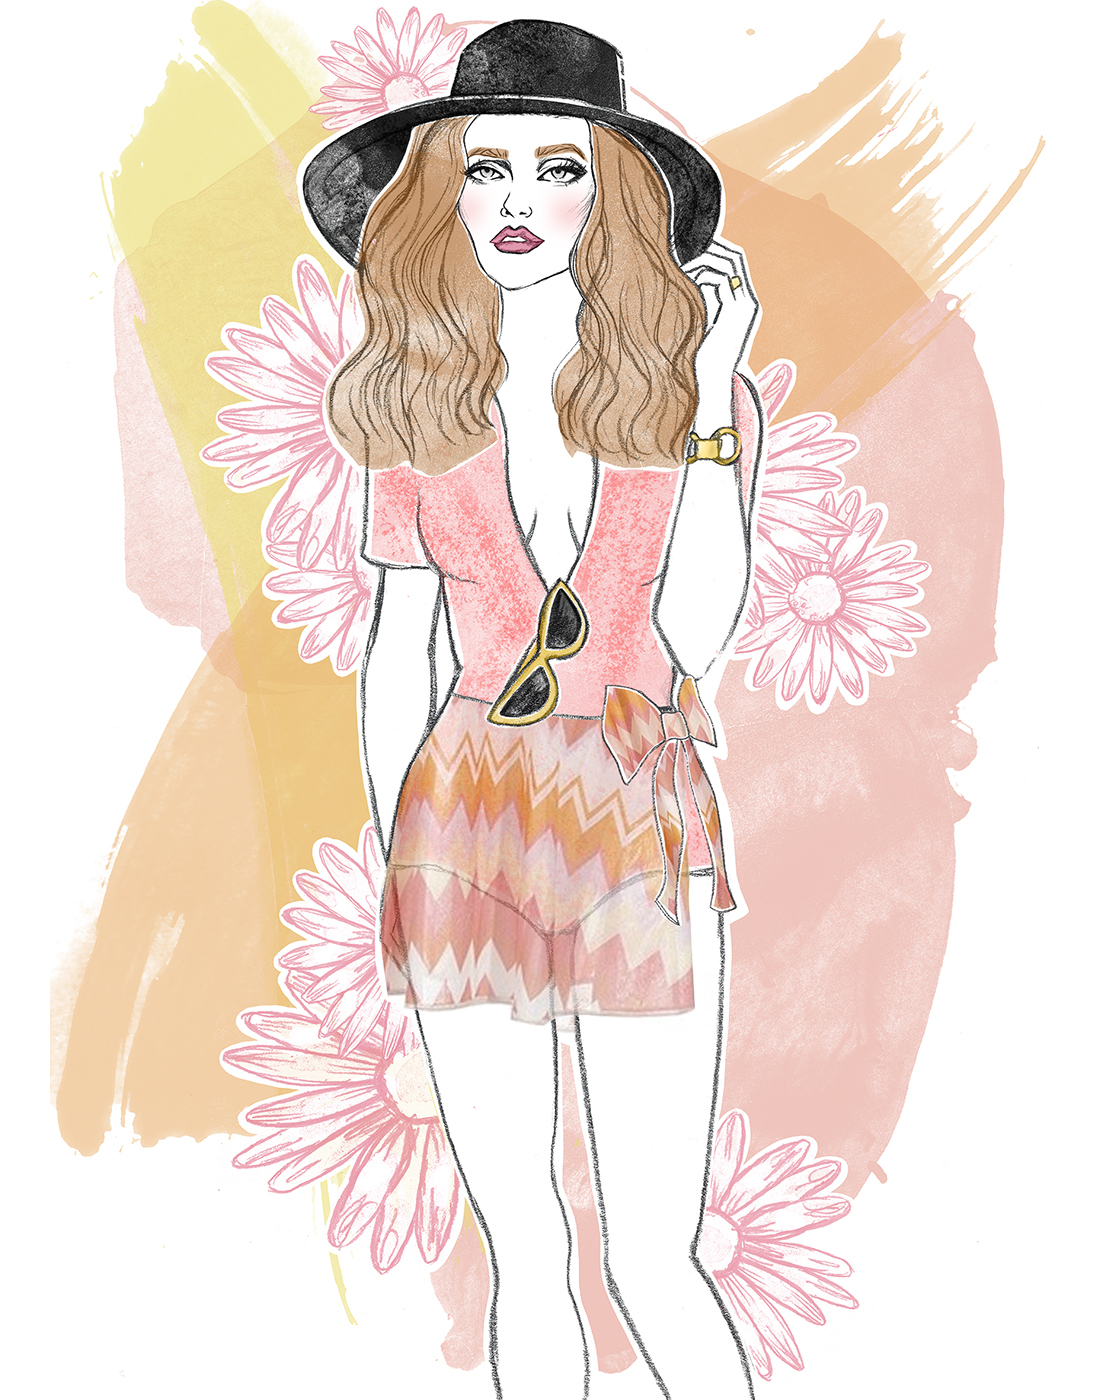 Graphite drawing, digital colouring    Inspired by Georgia May Jagger in Vogue 2011